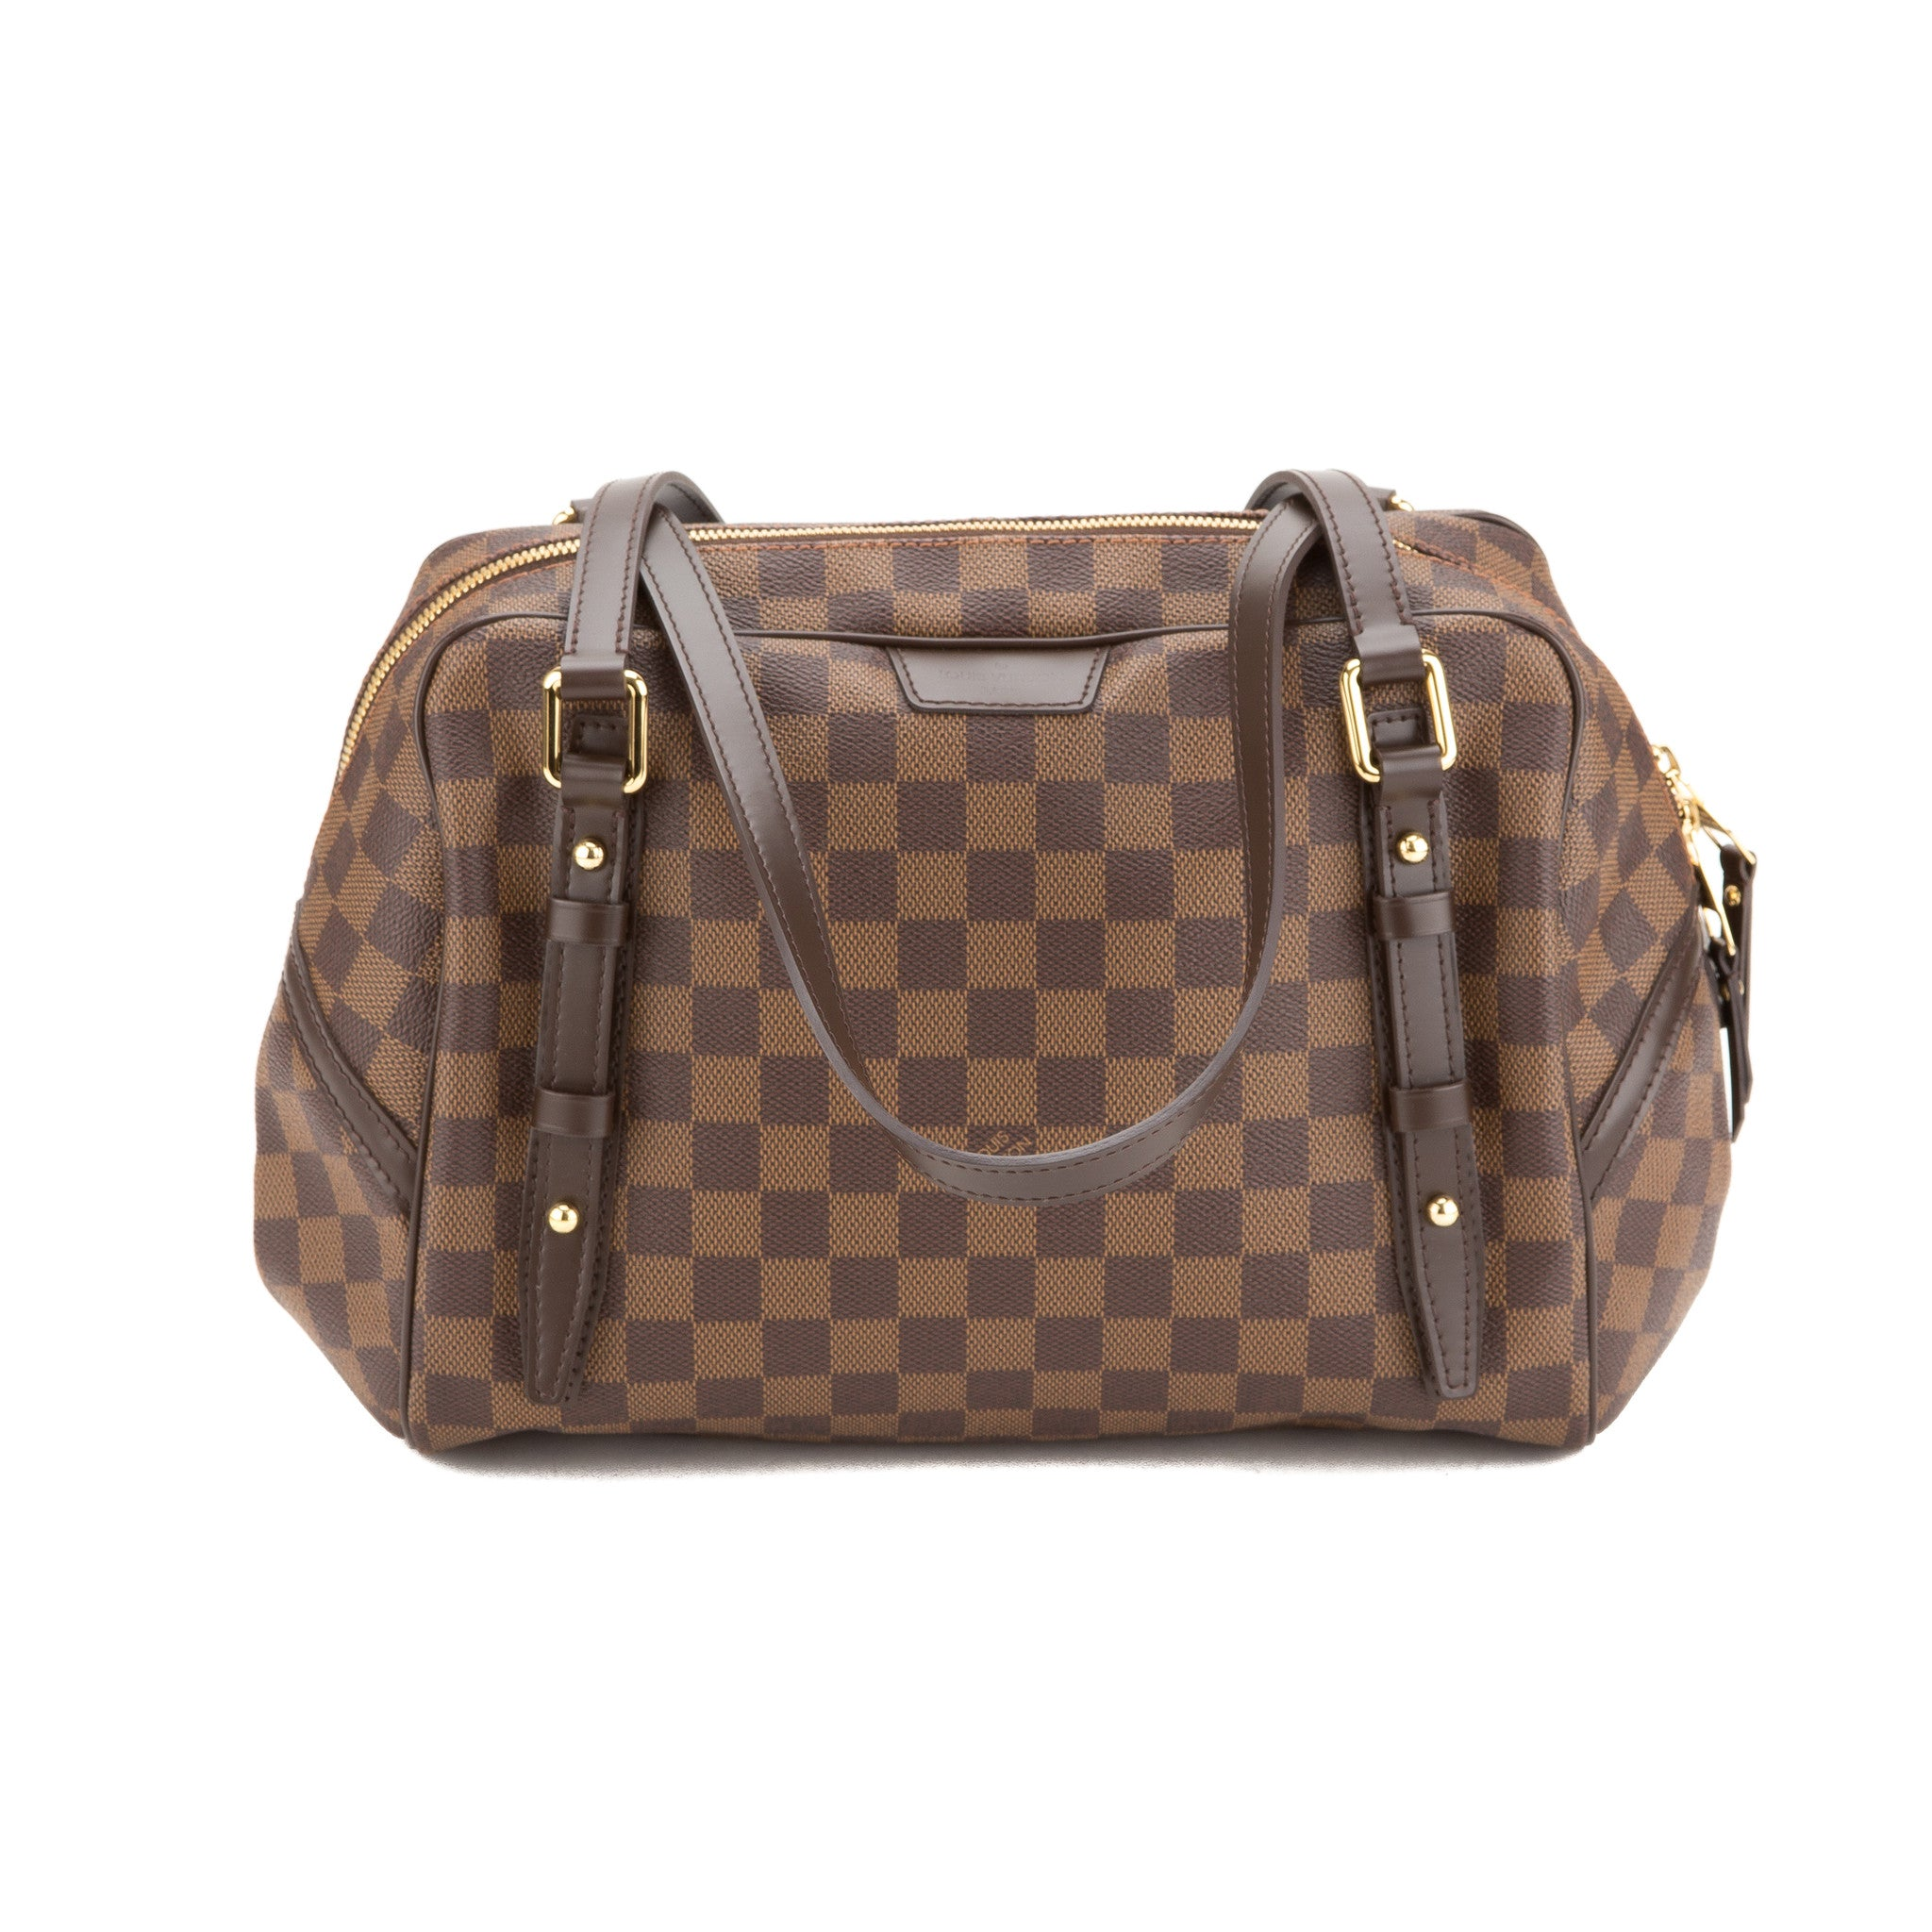 85026924494d Louis Vuitton Damier Ebene Rivington GM Bag (Pre-owned) - 2294021 ...